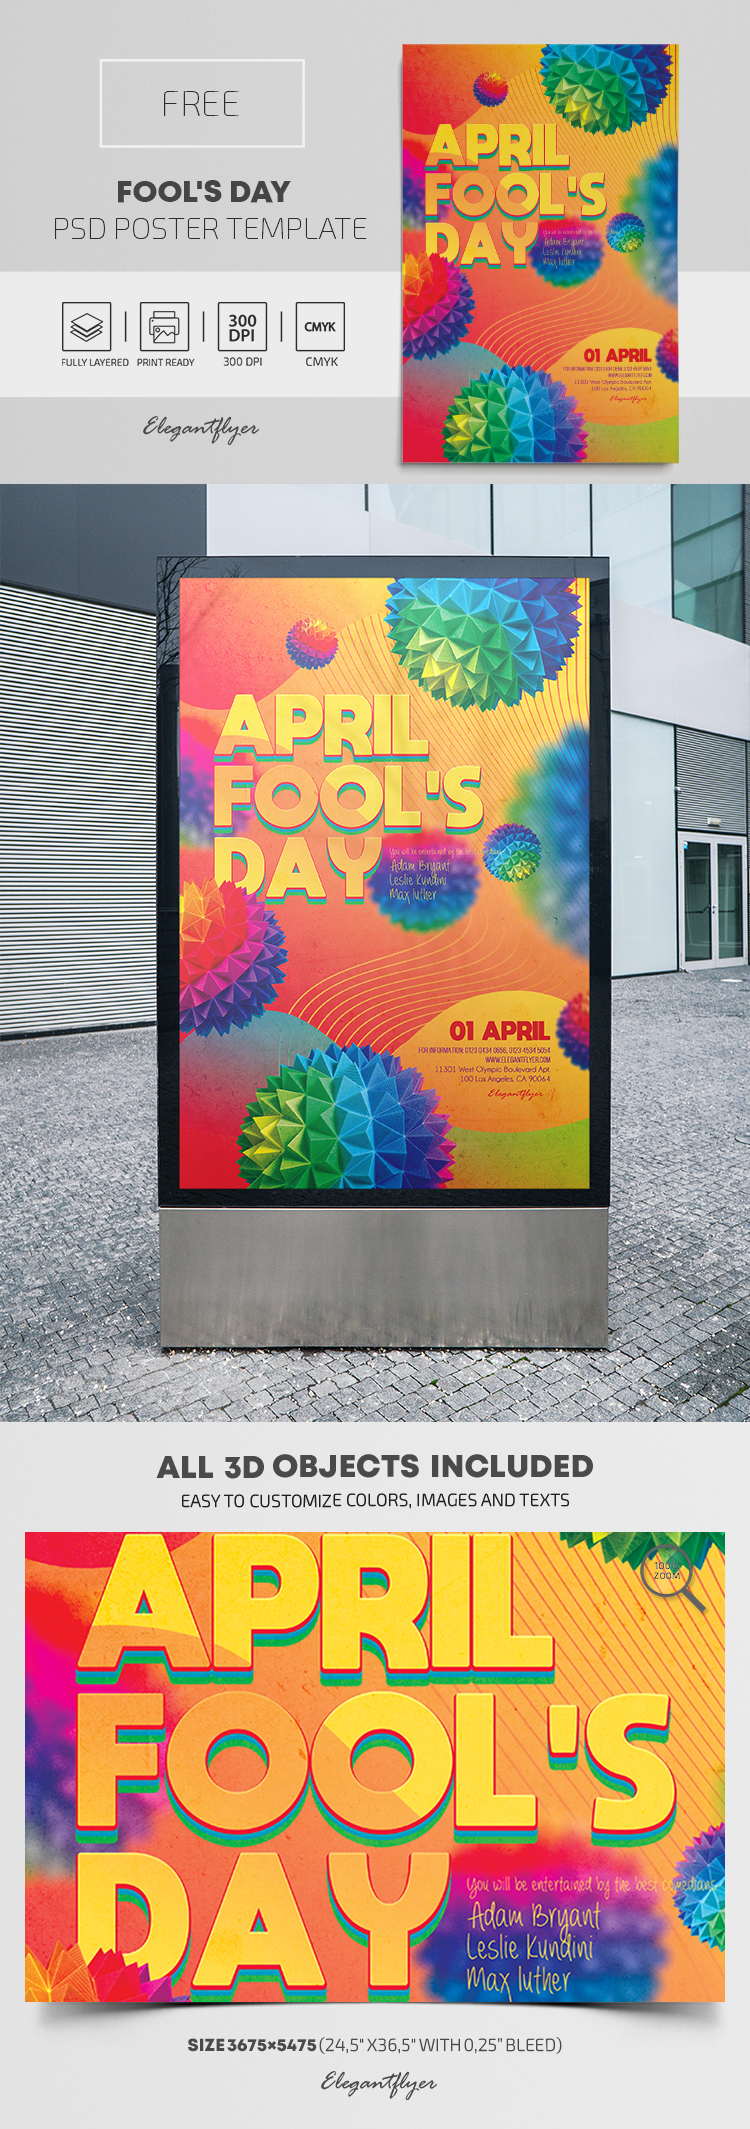 Fool's Day – Free PSD Poster Template